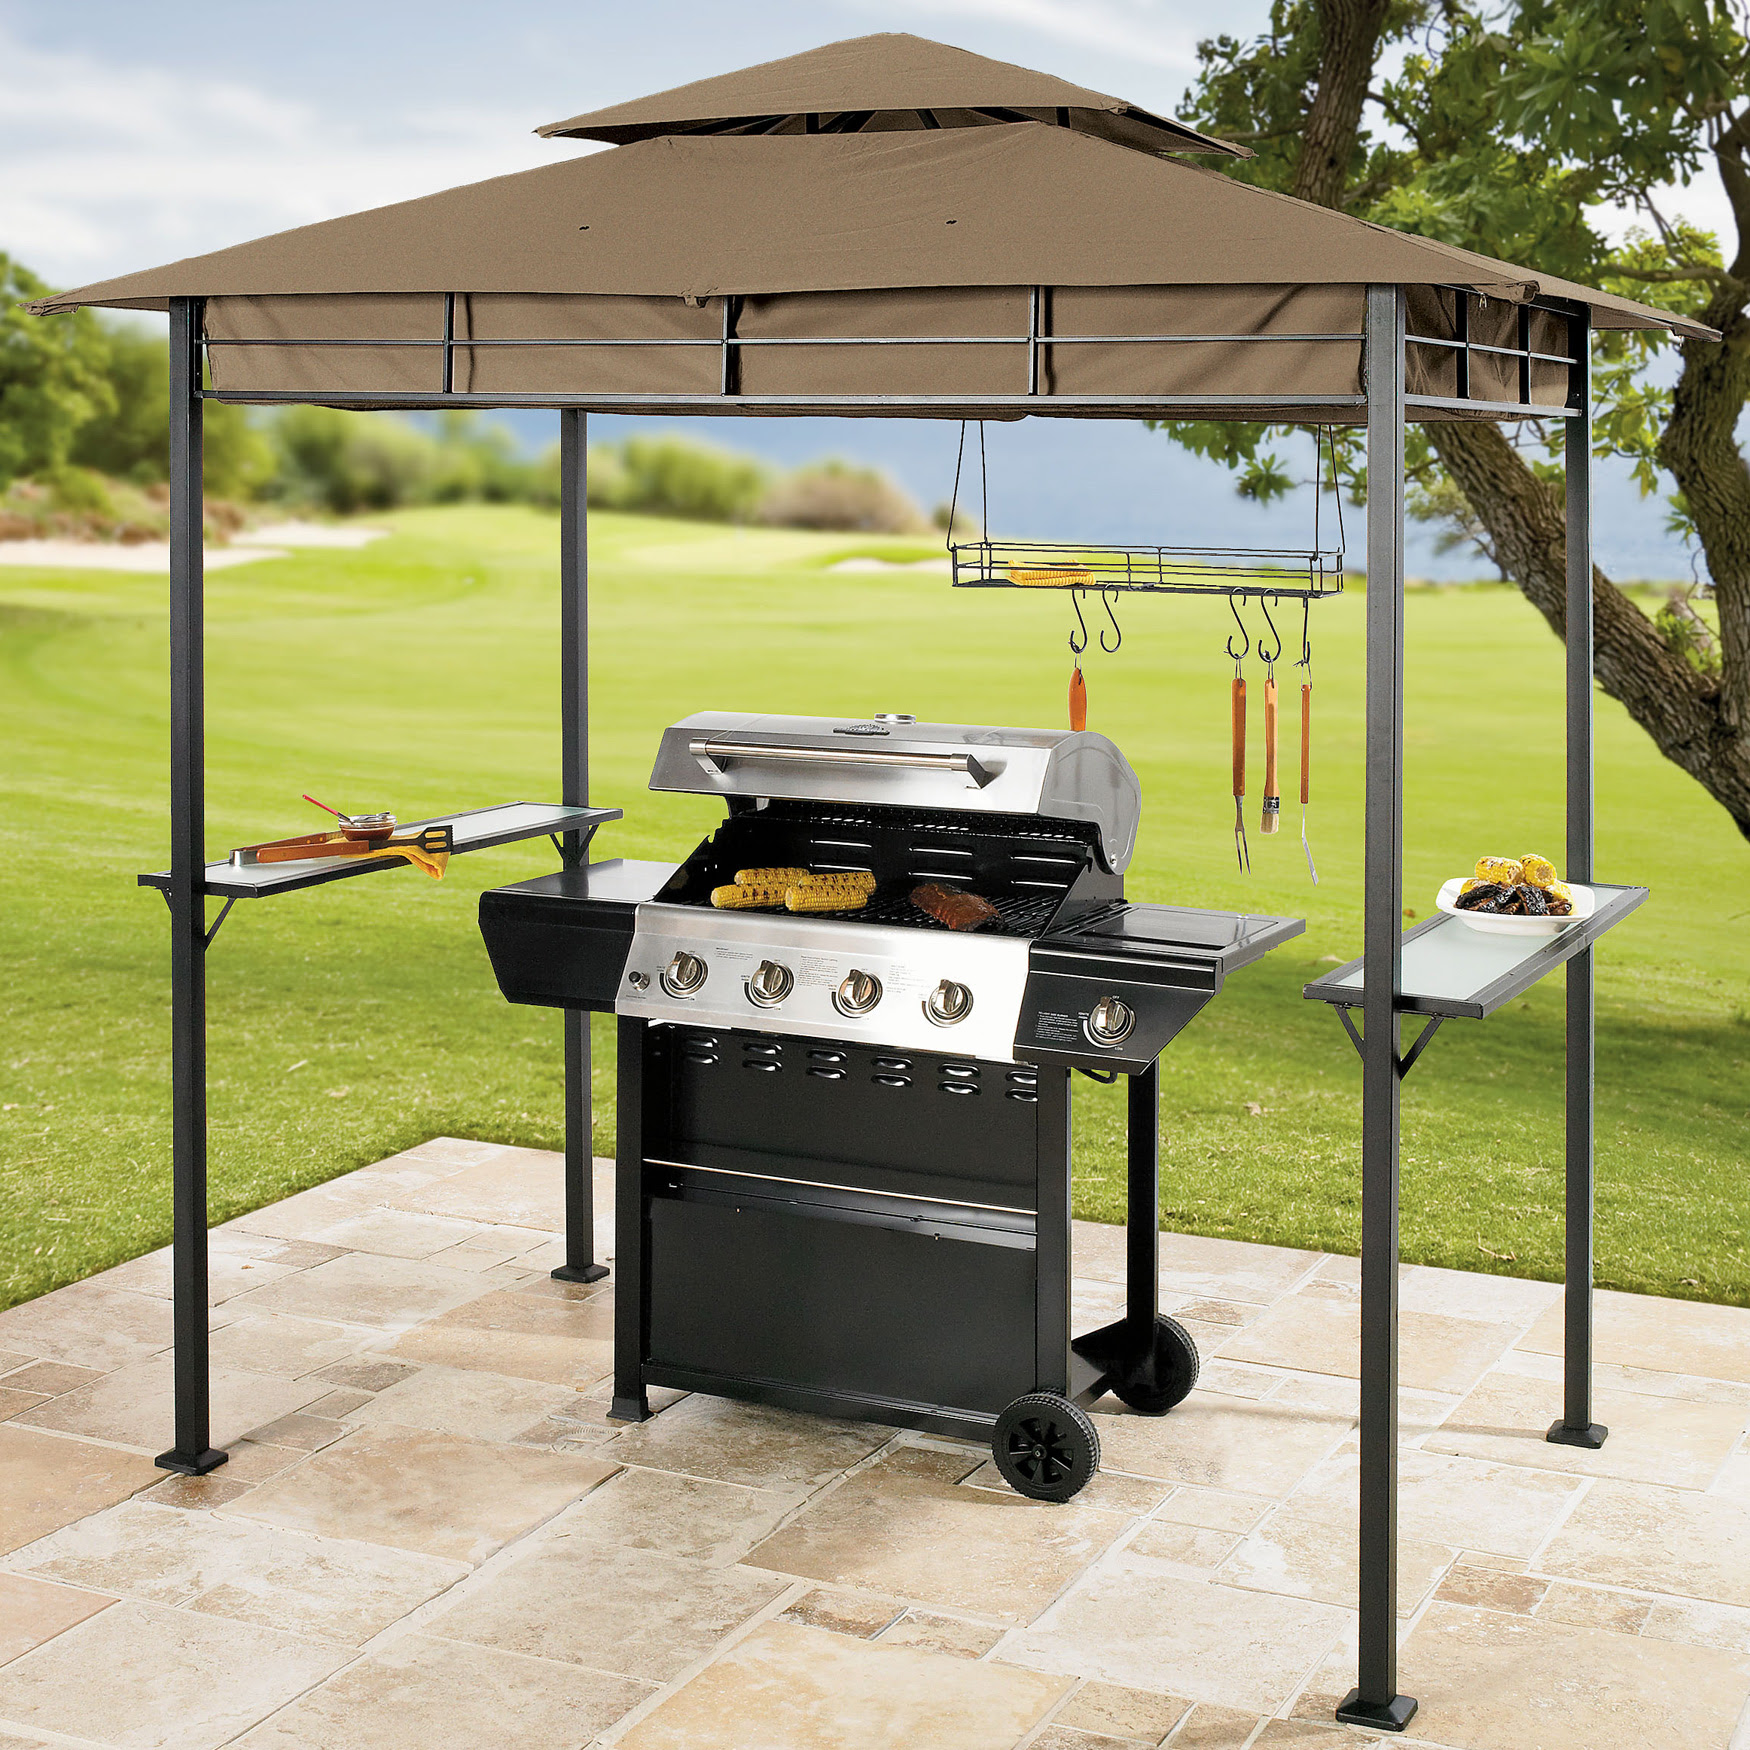 Create a grilling oasis with the Brylane Home Grilling Gazebo